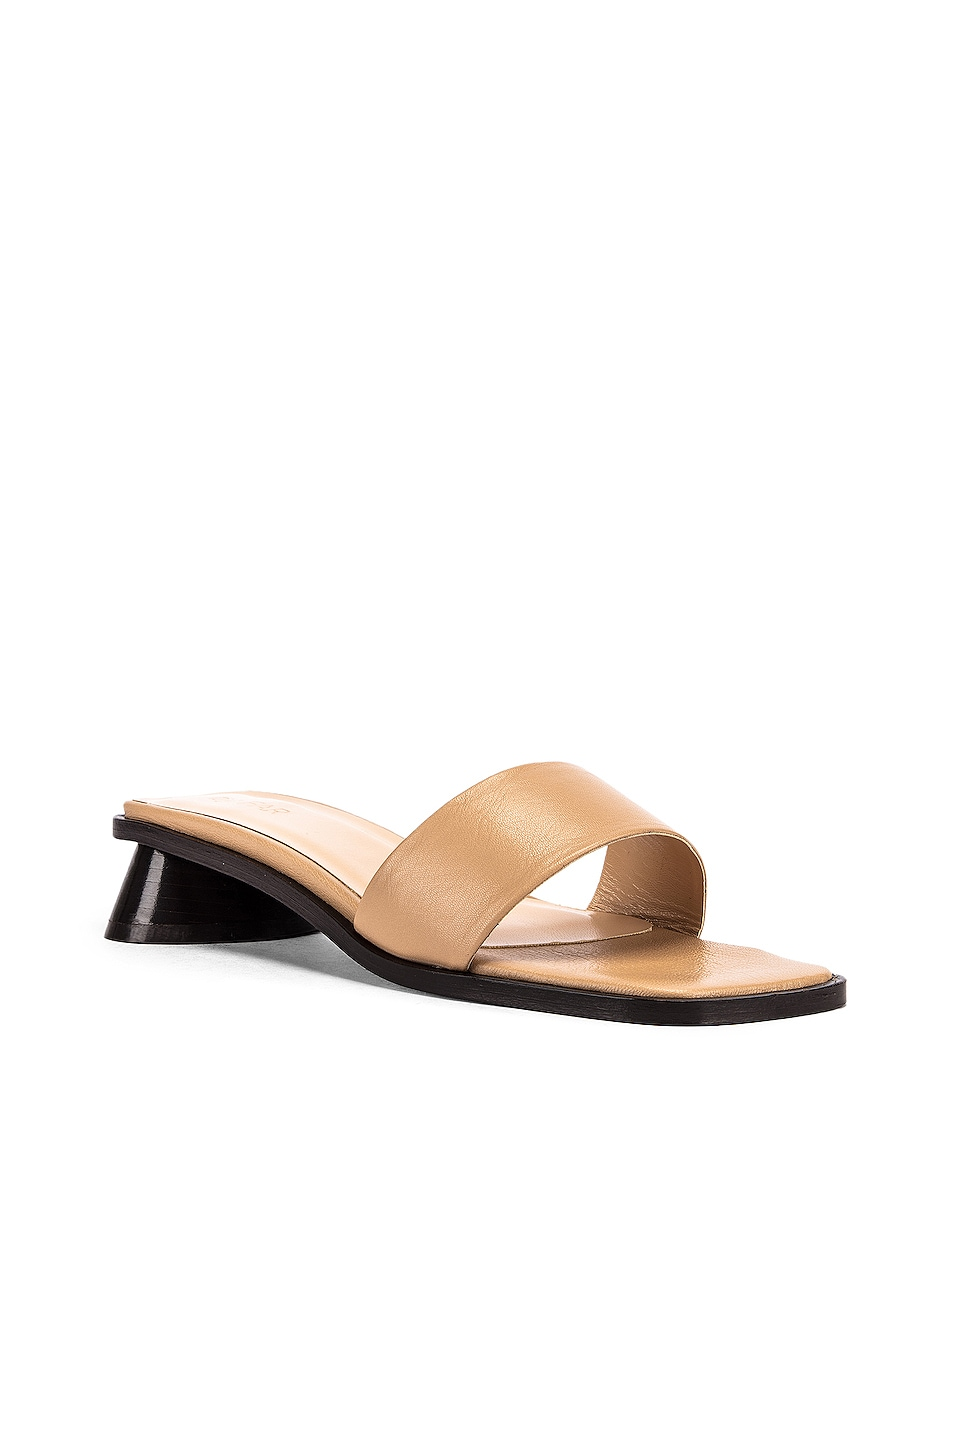 Image 2 of BY FAR Sonia Sandal in Nude